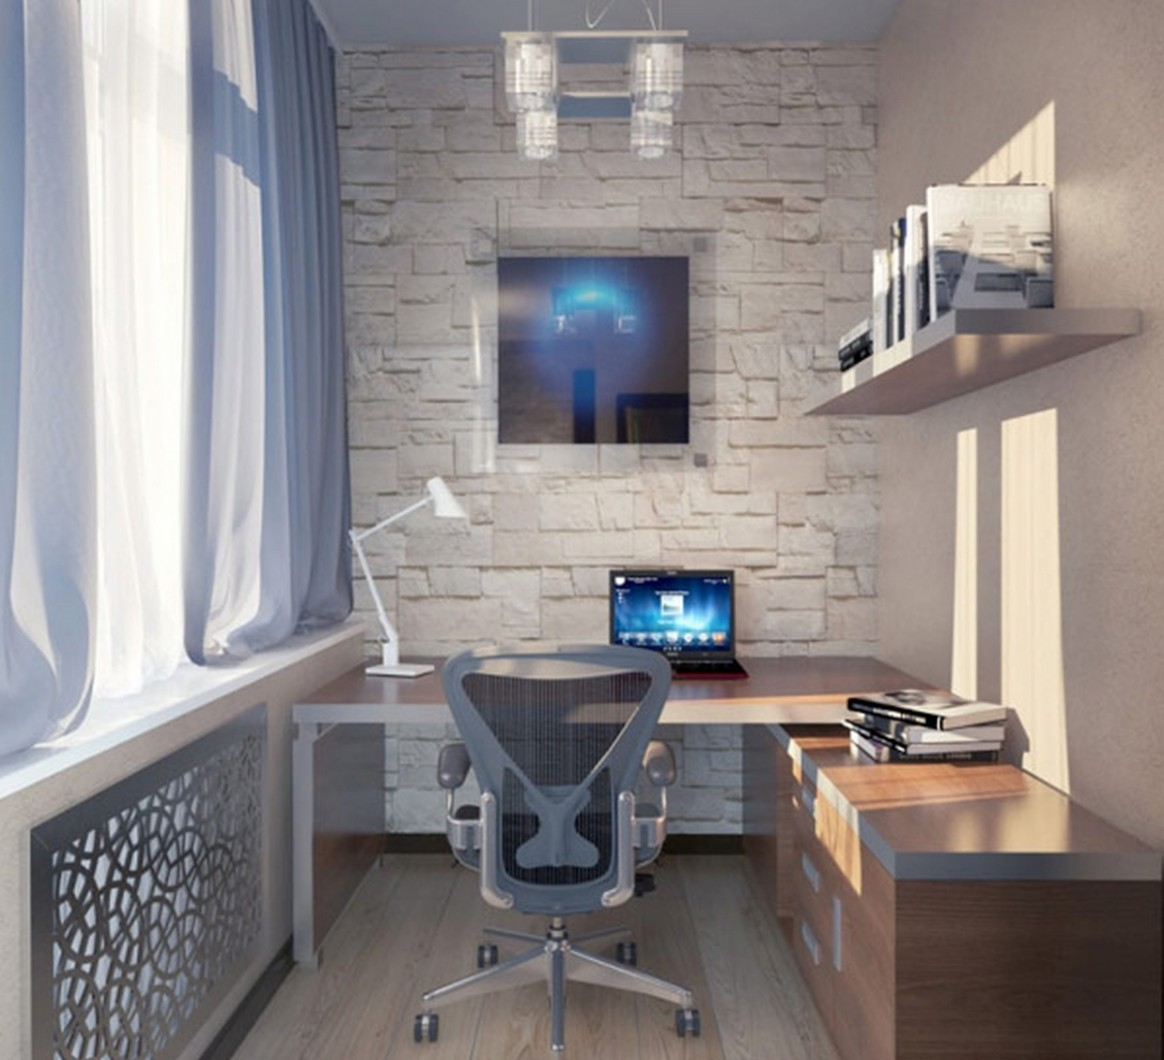 Great Small Home Office Ideas For Two With L Shaped Desk  - Home Office Ideas With L Shaped Desk